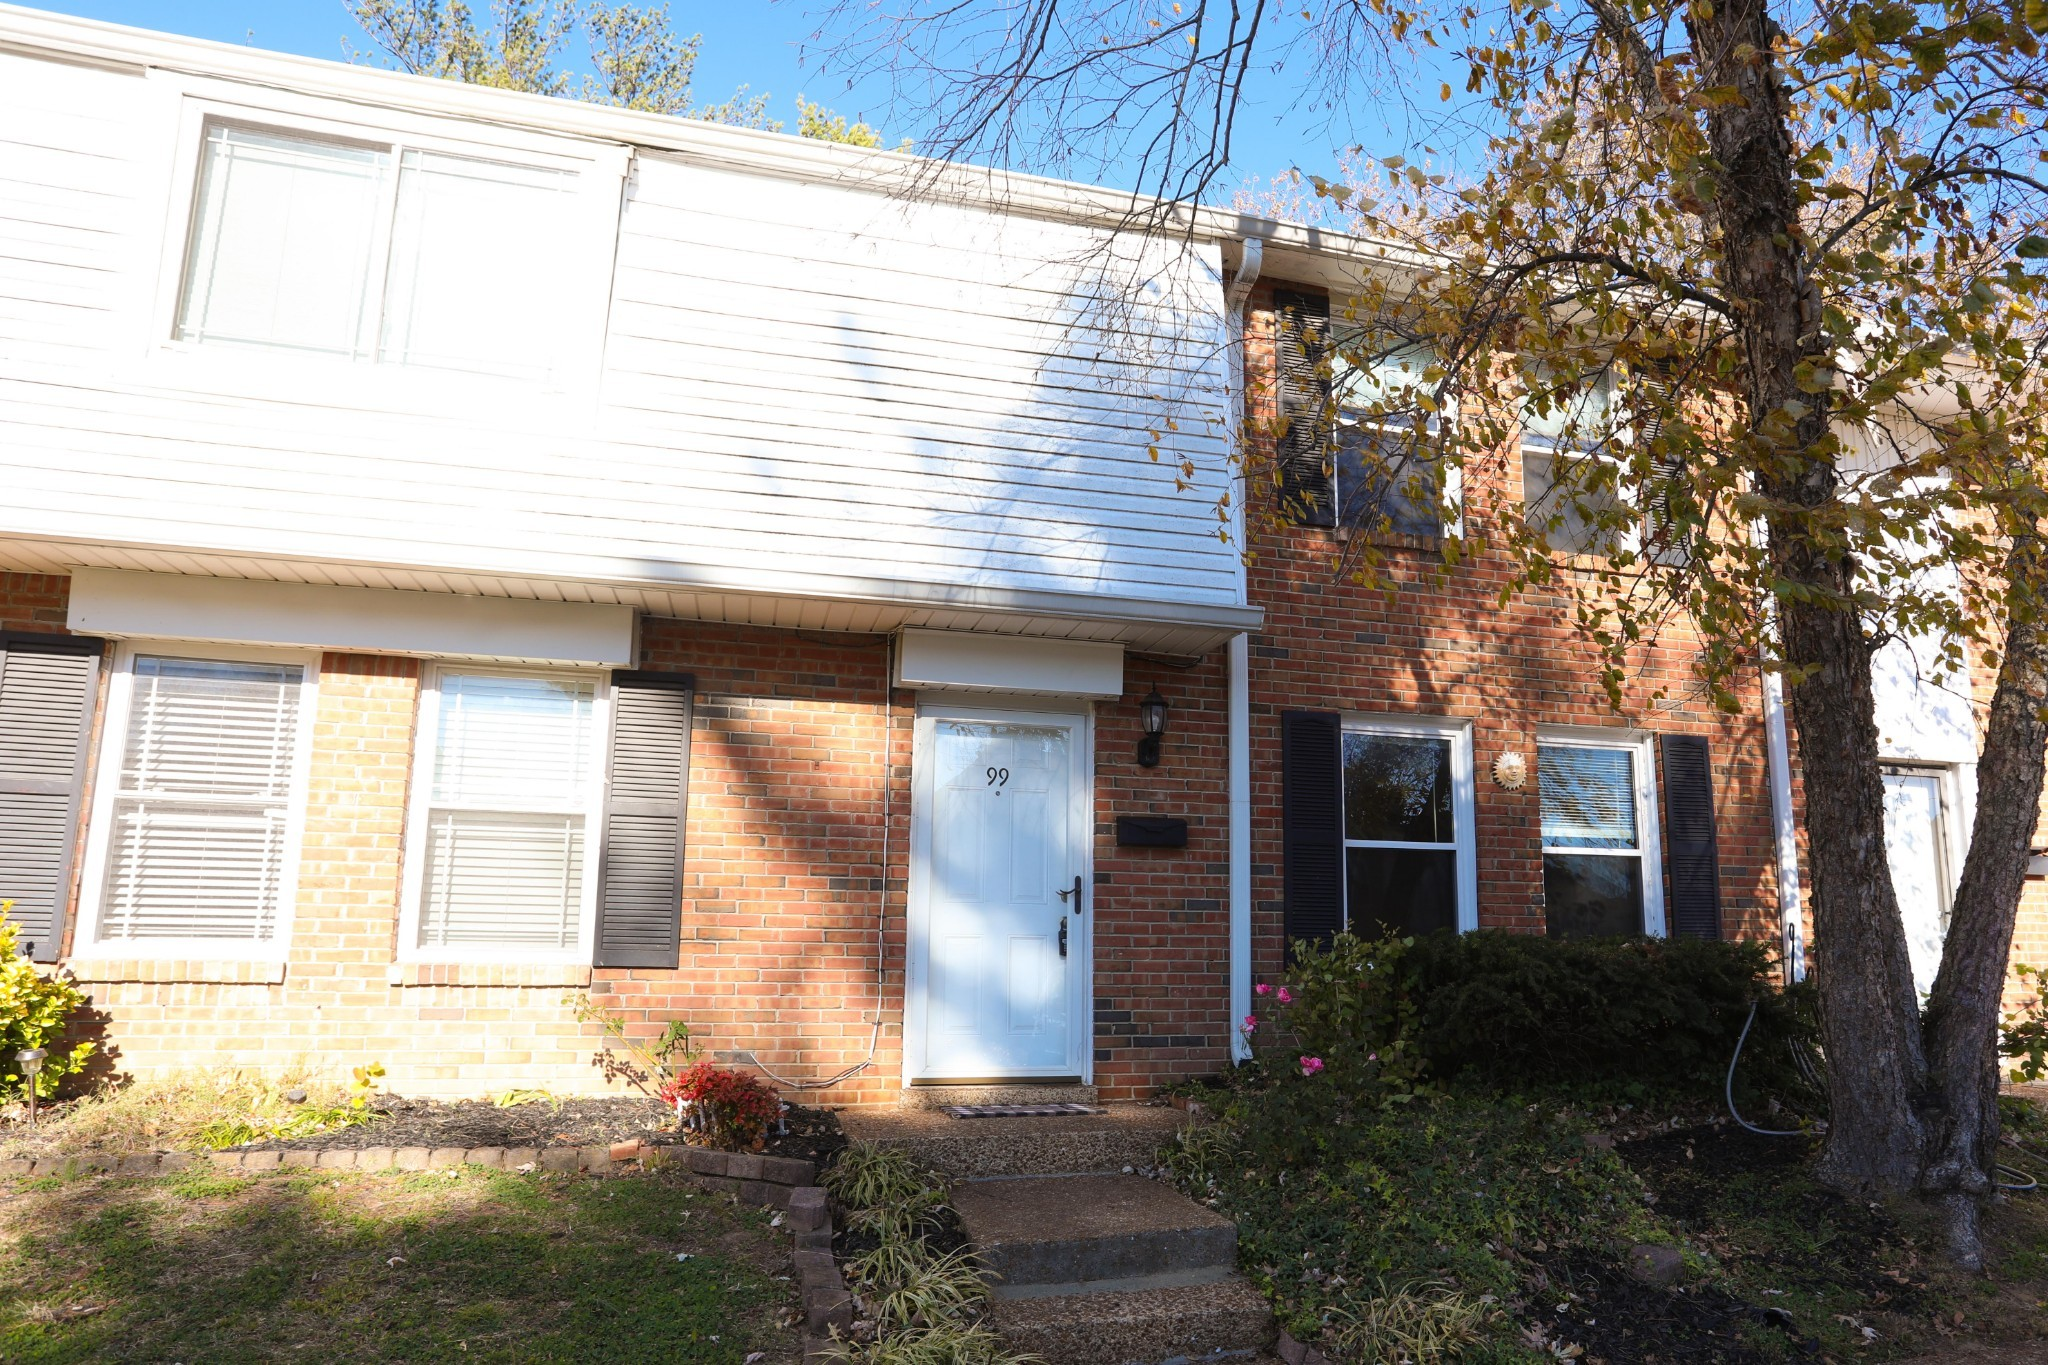 5510 Country Drive N #99 Property Photo - Nashville, TN real estate listing